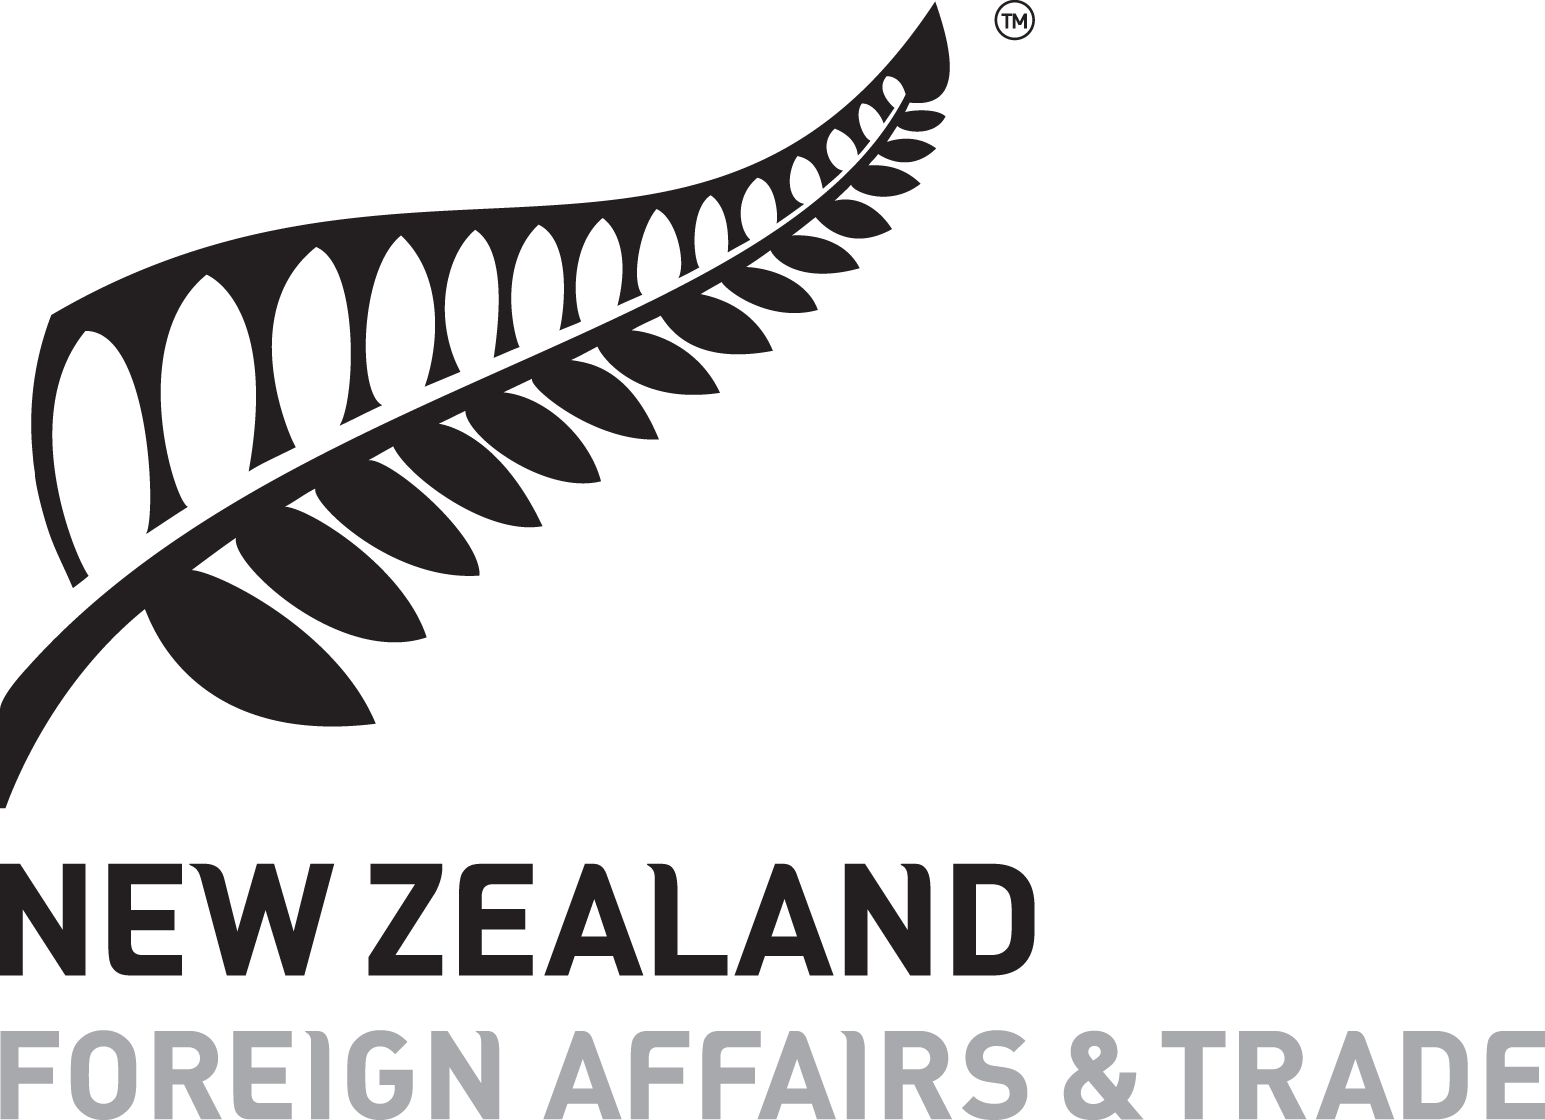 Ministry of Foreign Affairs (New Zealand)